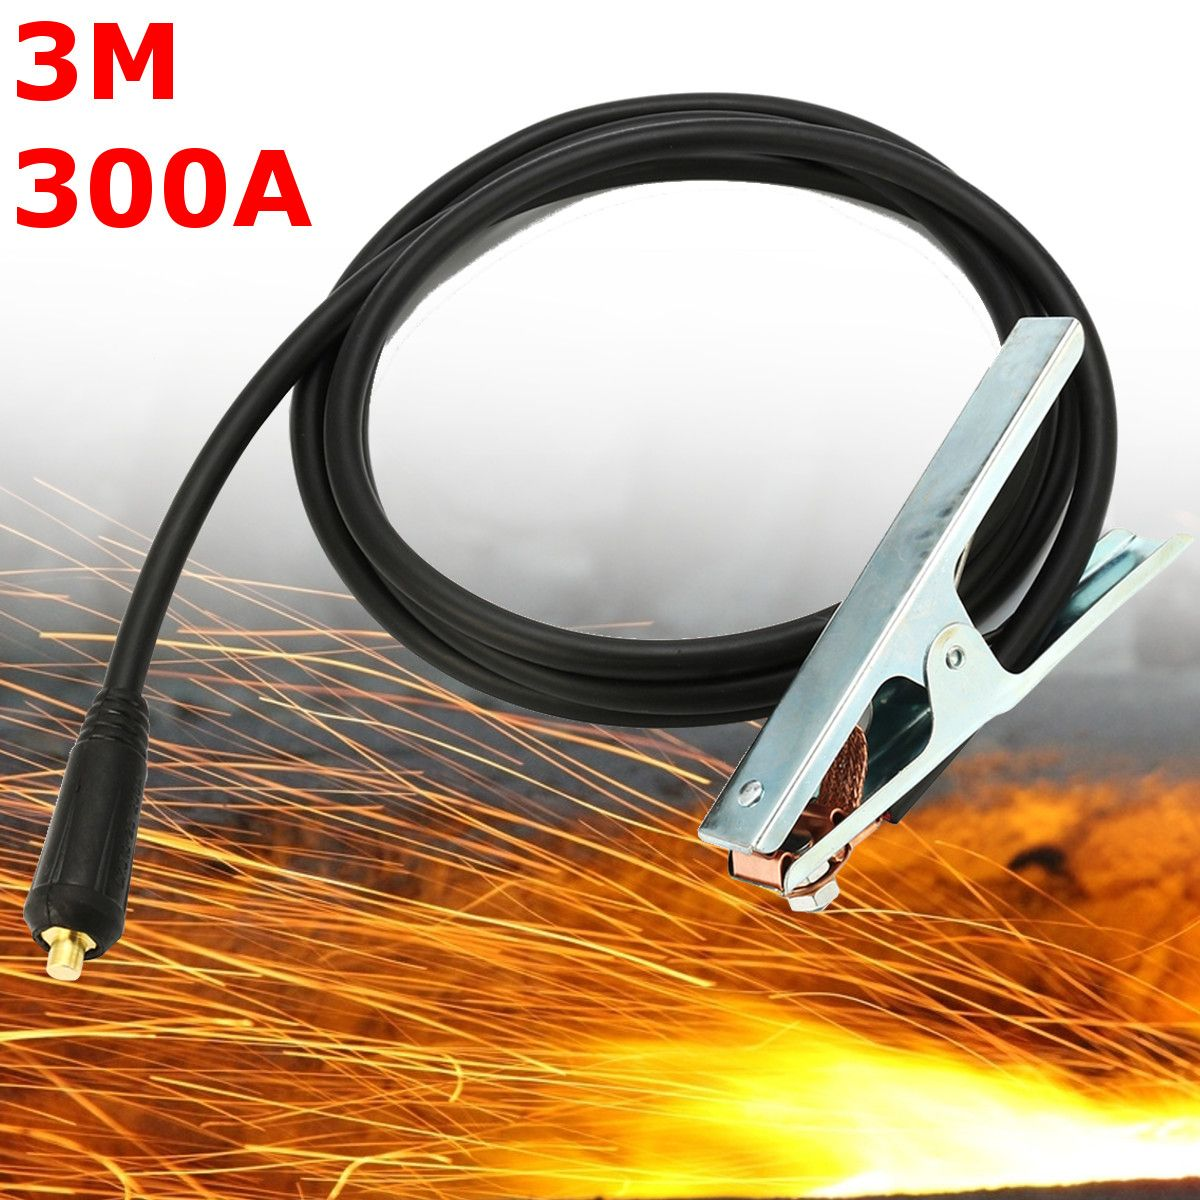 300A Groud Welding Earth Cable Clamp Clip For MIG TIG ARC Welder 3M/ Cable 10-25 Plug Weld Holder Welding Soldering Supply Tool